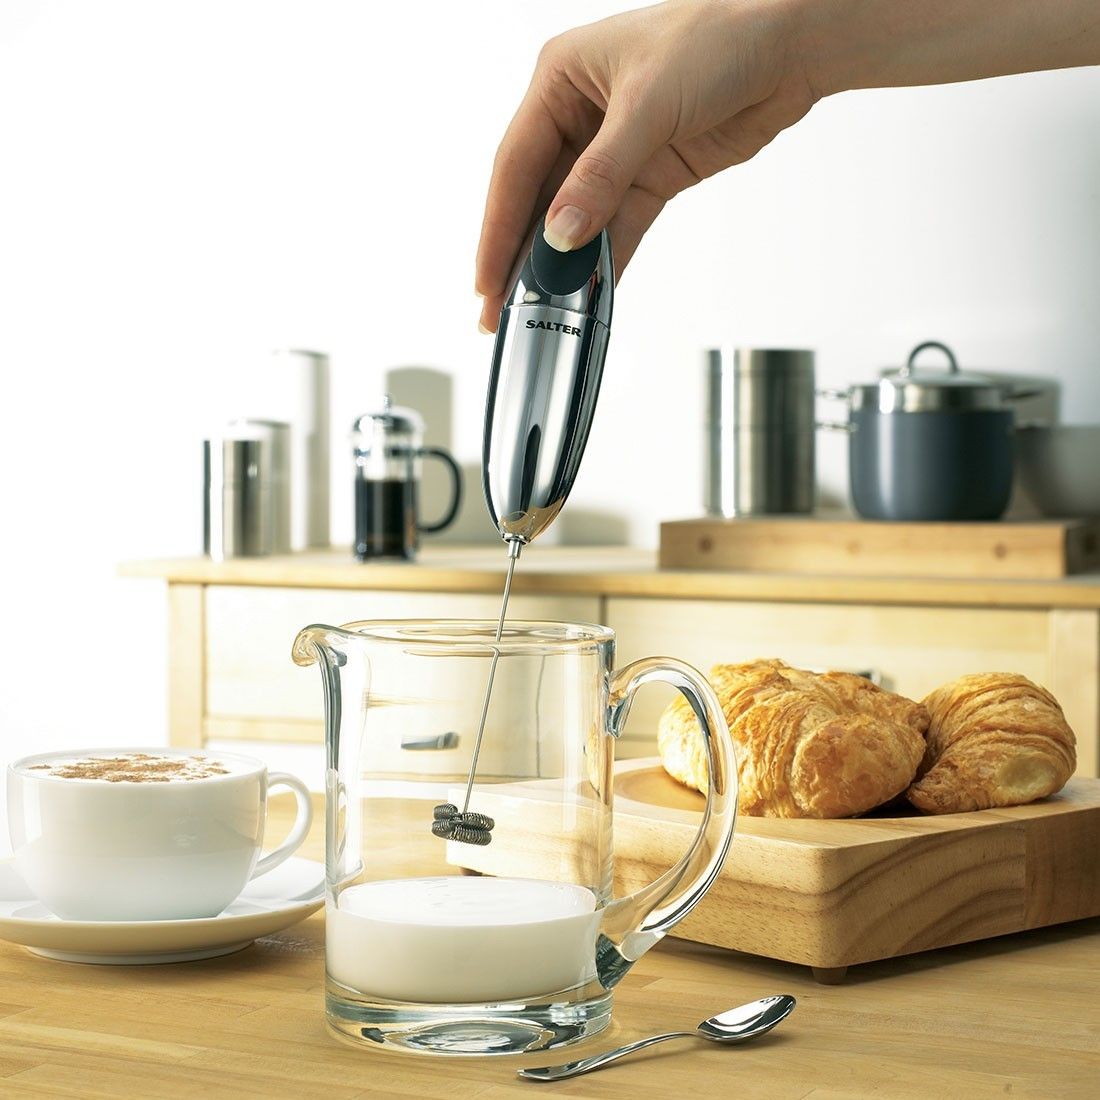 Salter: Double Coil Whisk Milk Frother image